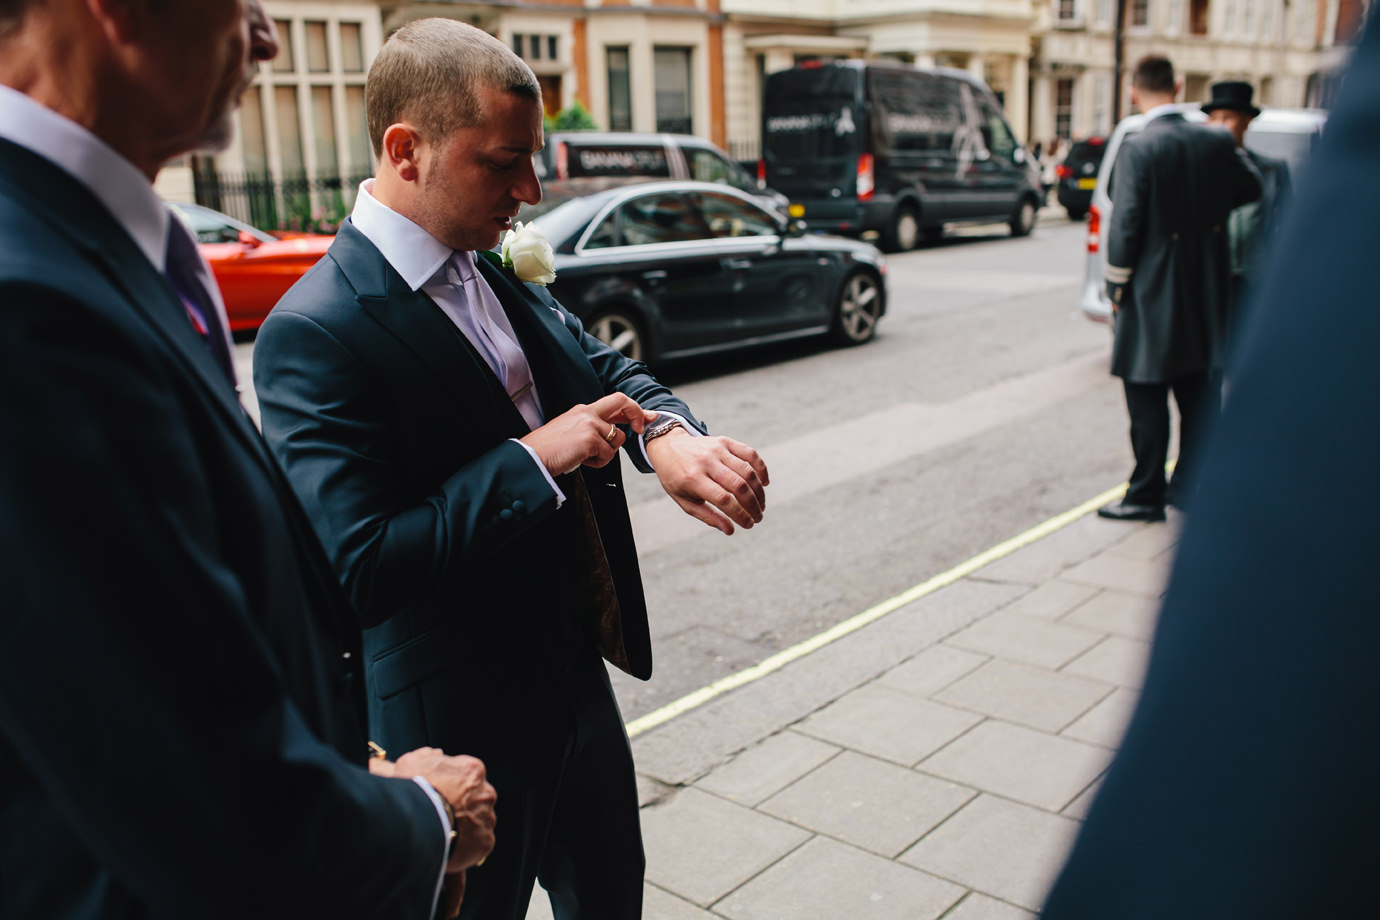 London documentary wedding photography